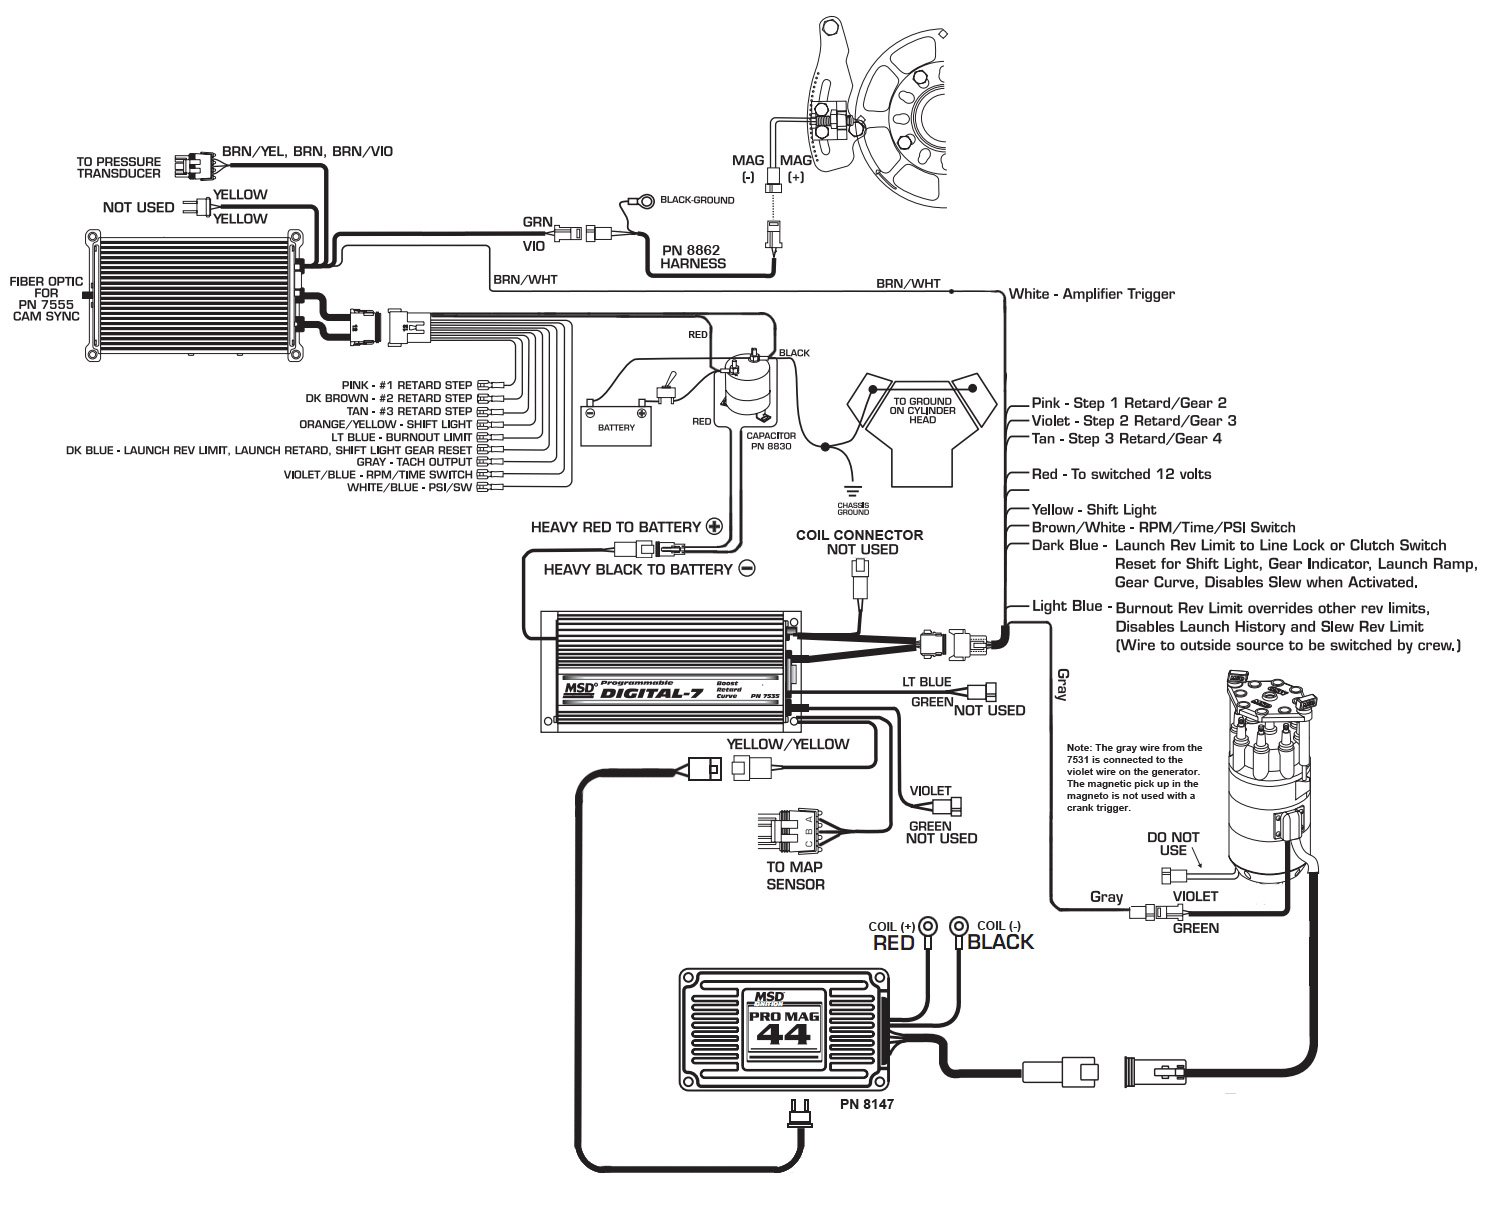 blog_diagrams_and_drawings_8973_8973_to_7531_to_promag_8973_to_7531_promag_reva 8973 to 7531 pro mag reva msd blog msd pro mag wiring diagram at readyjetset.co